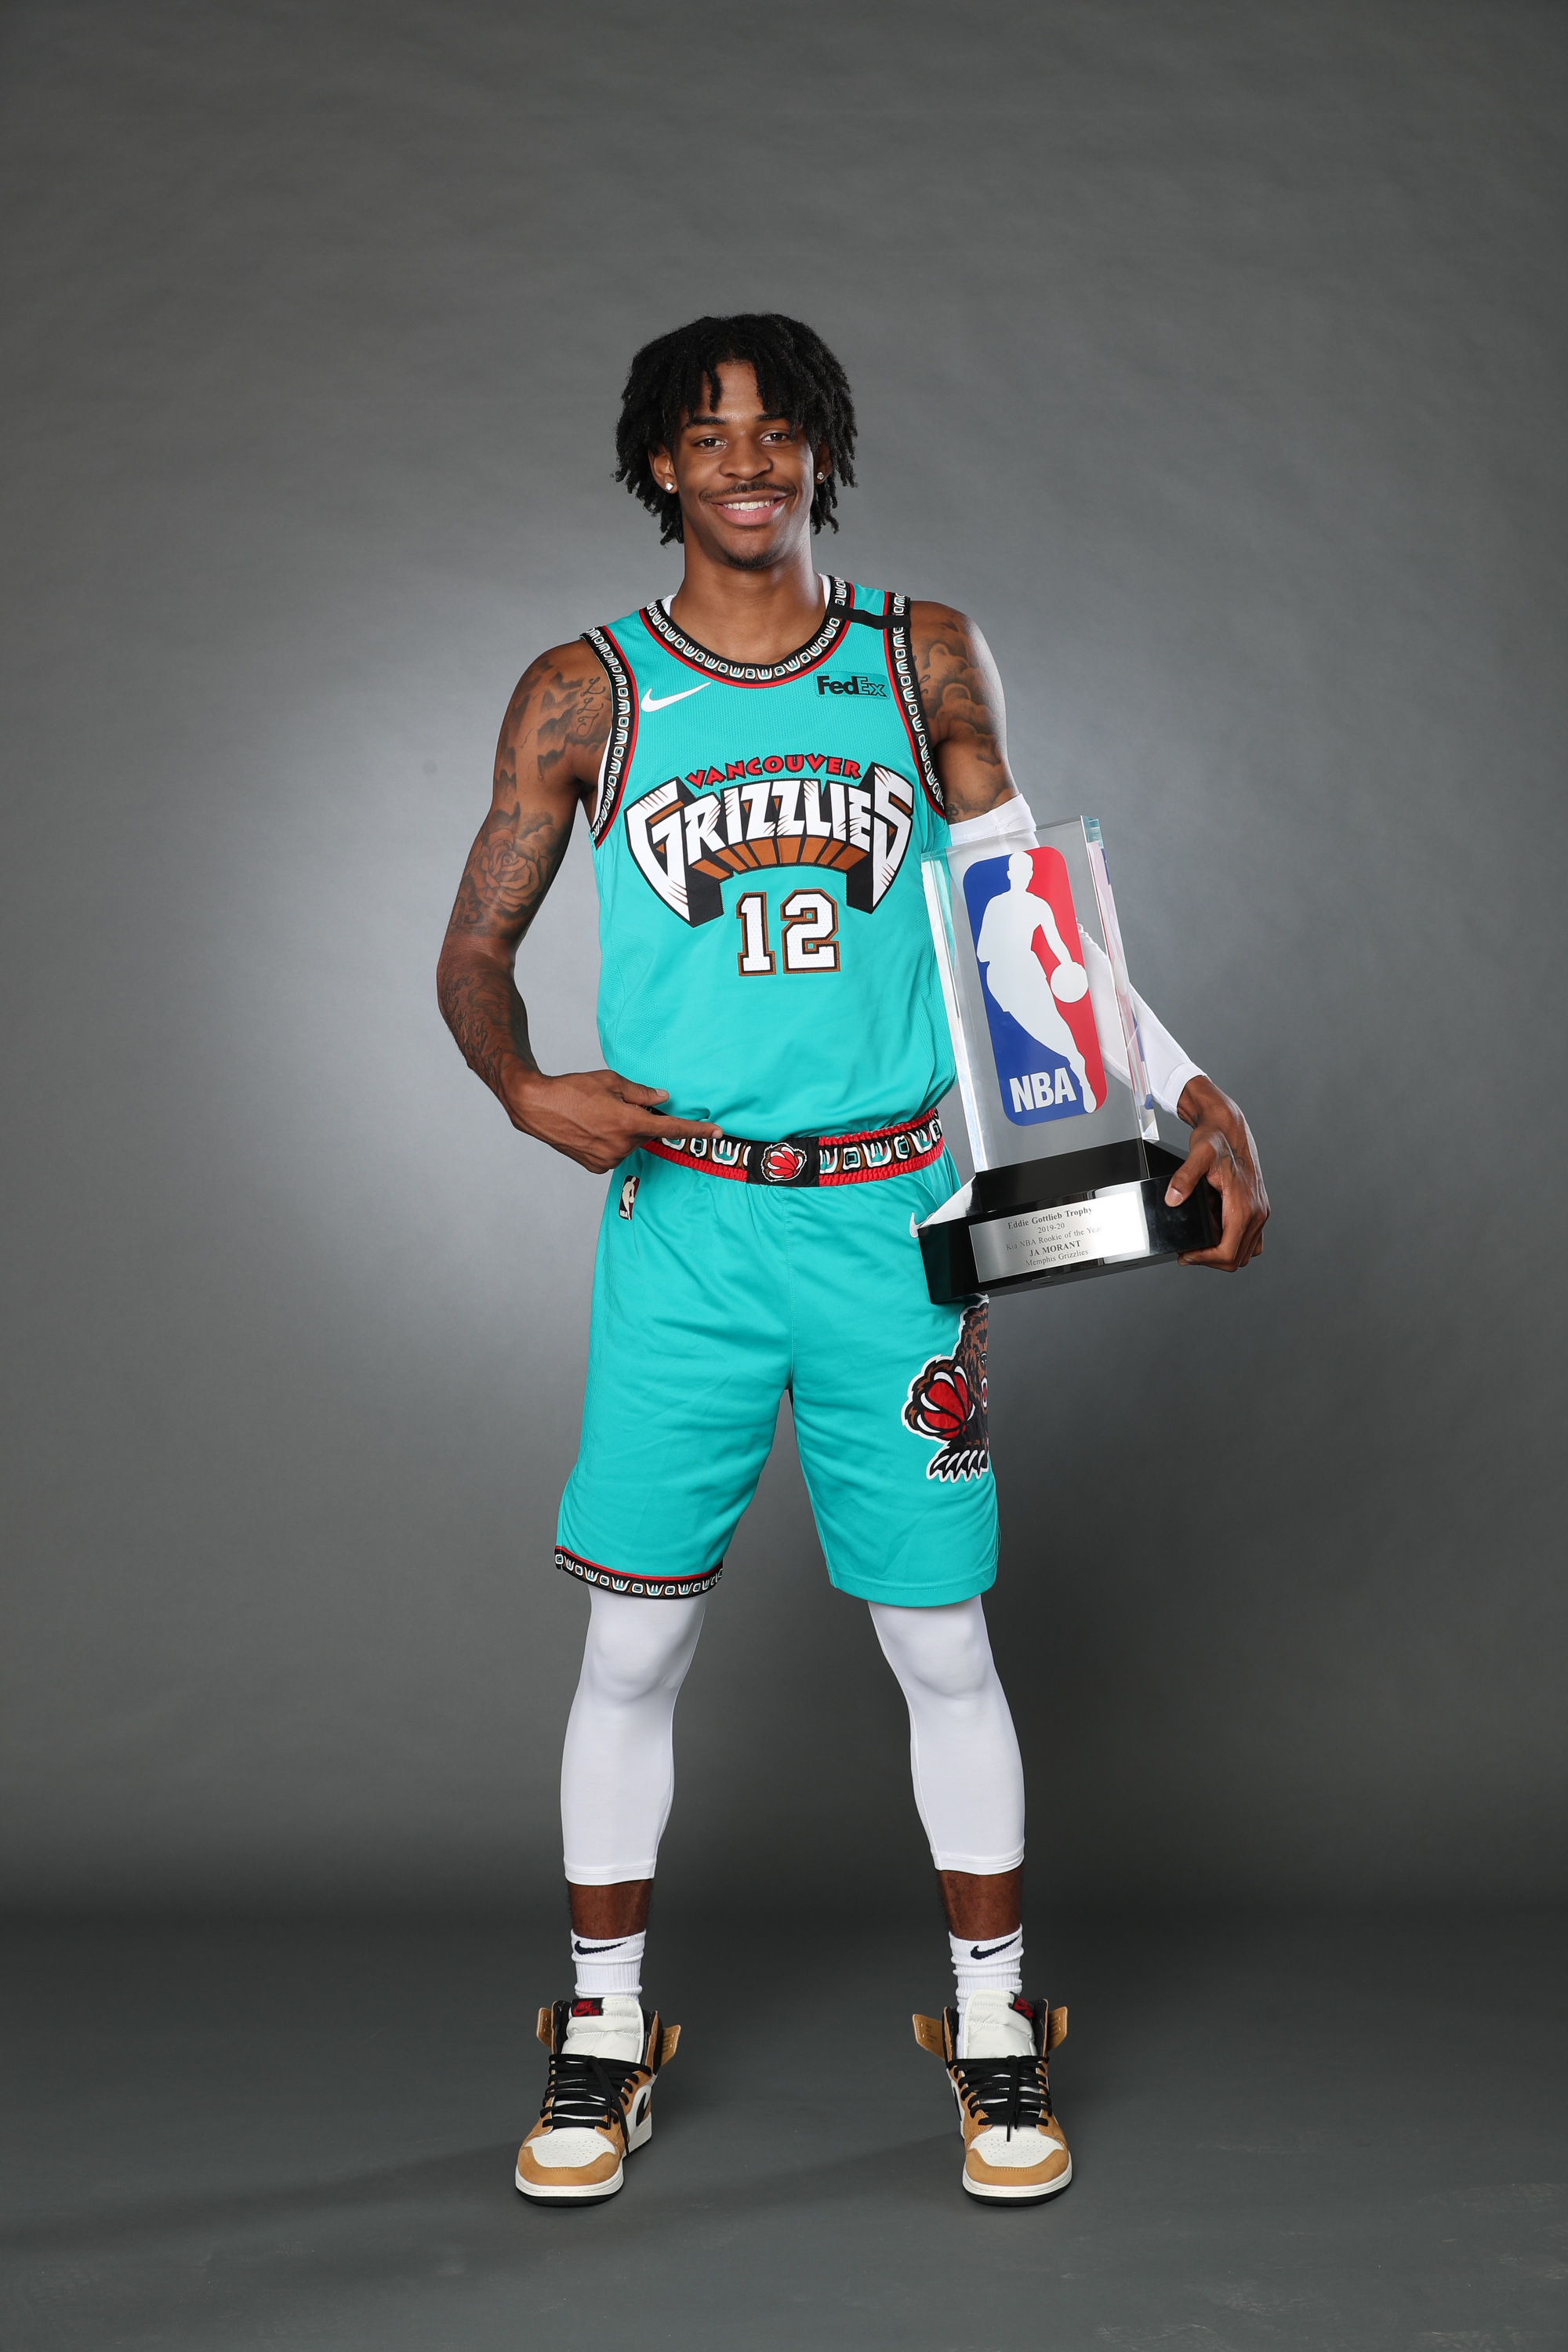 2019-20 Rookie of the Year Award